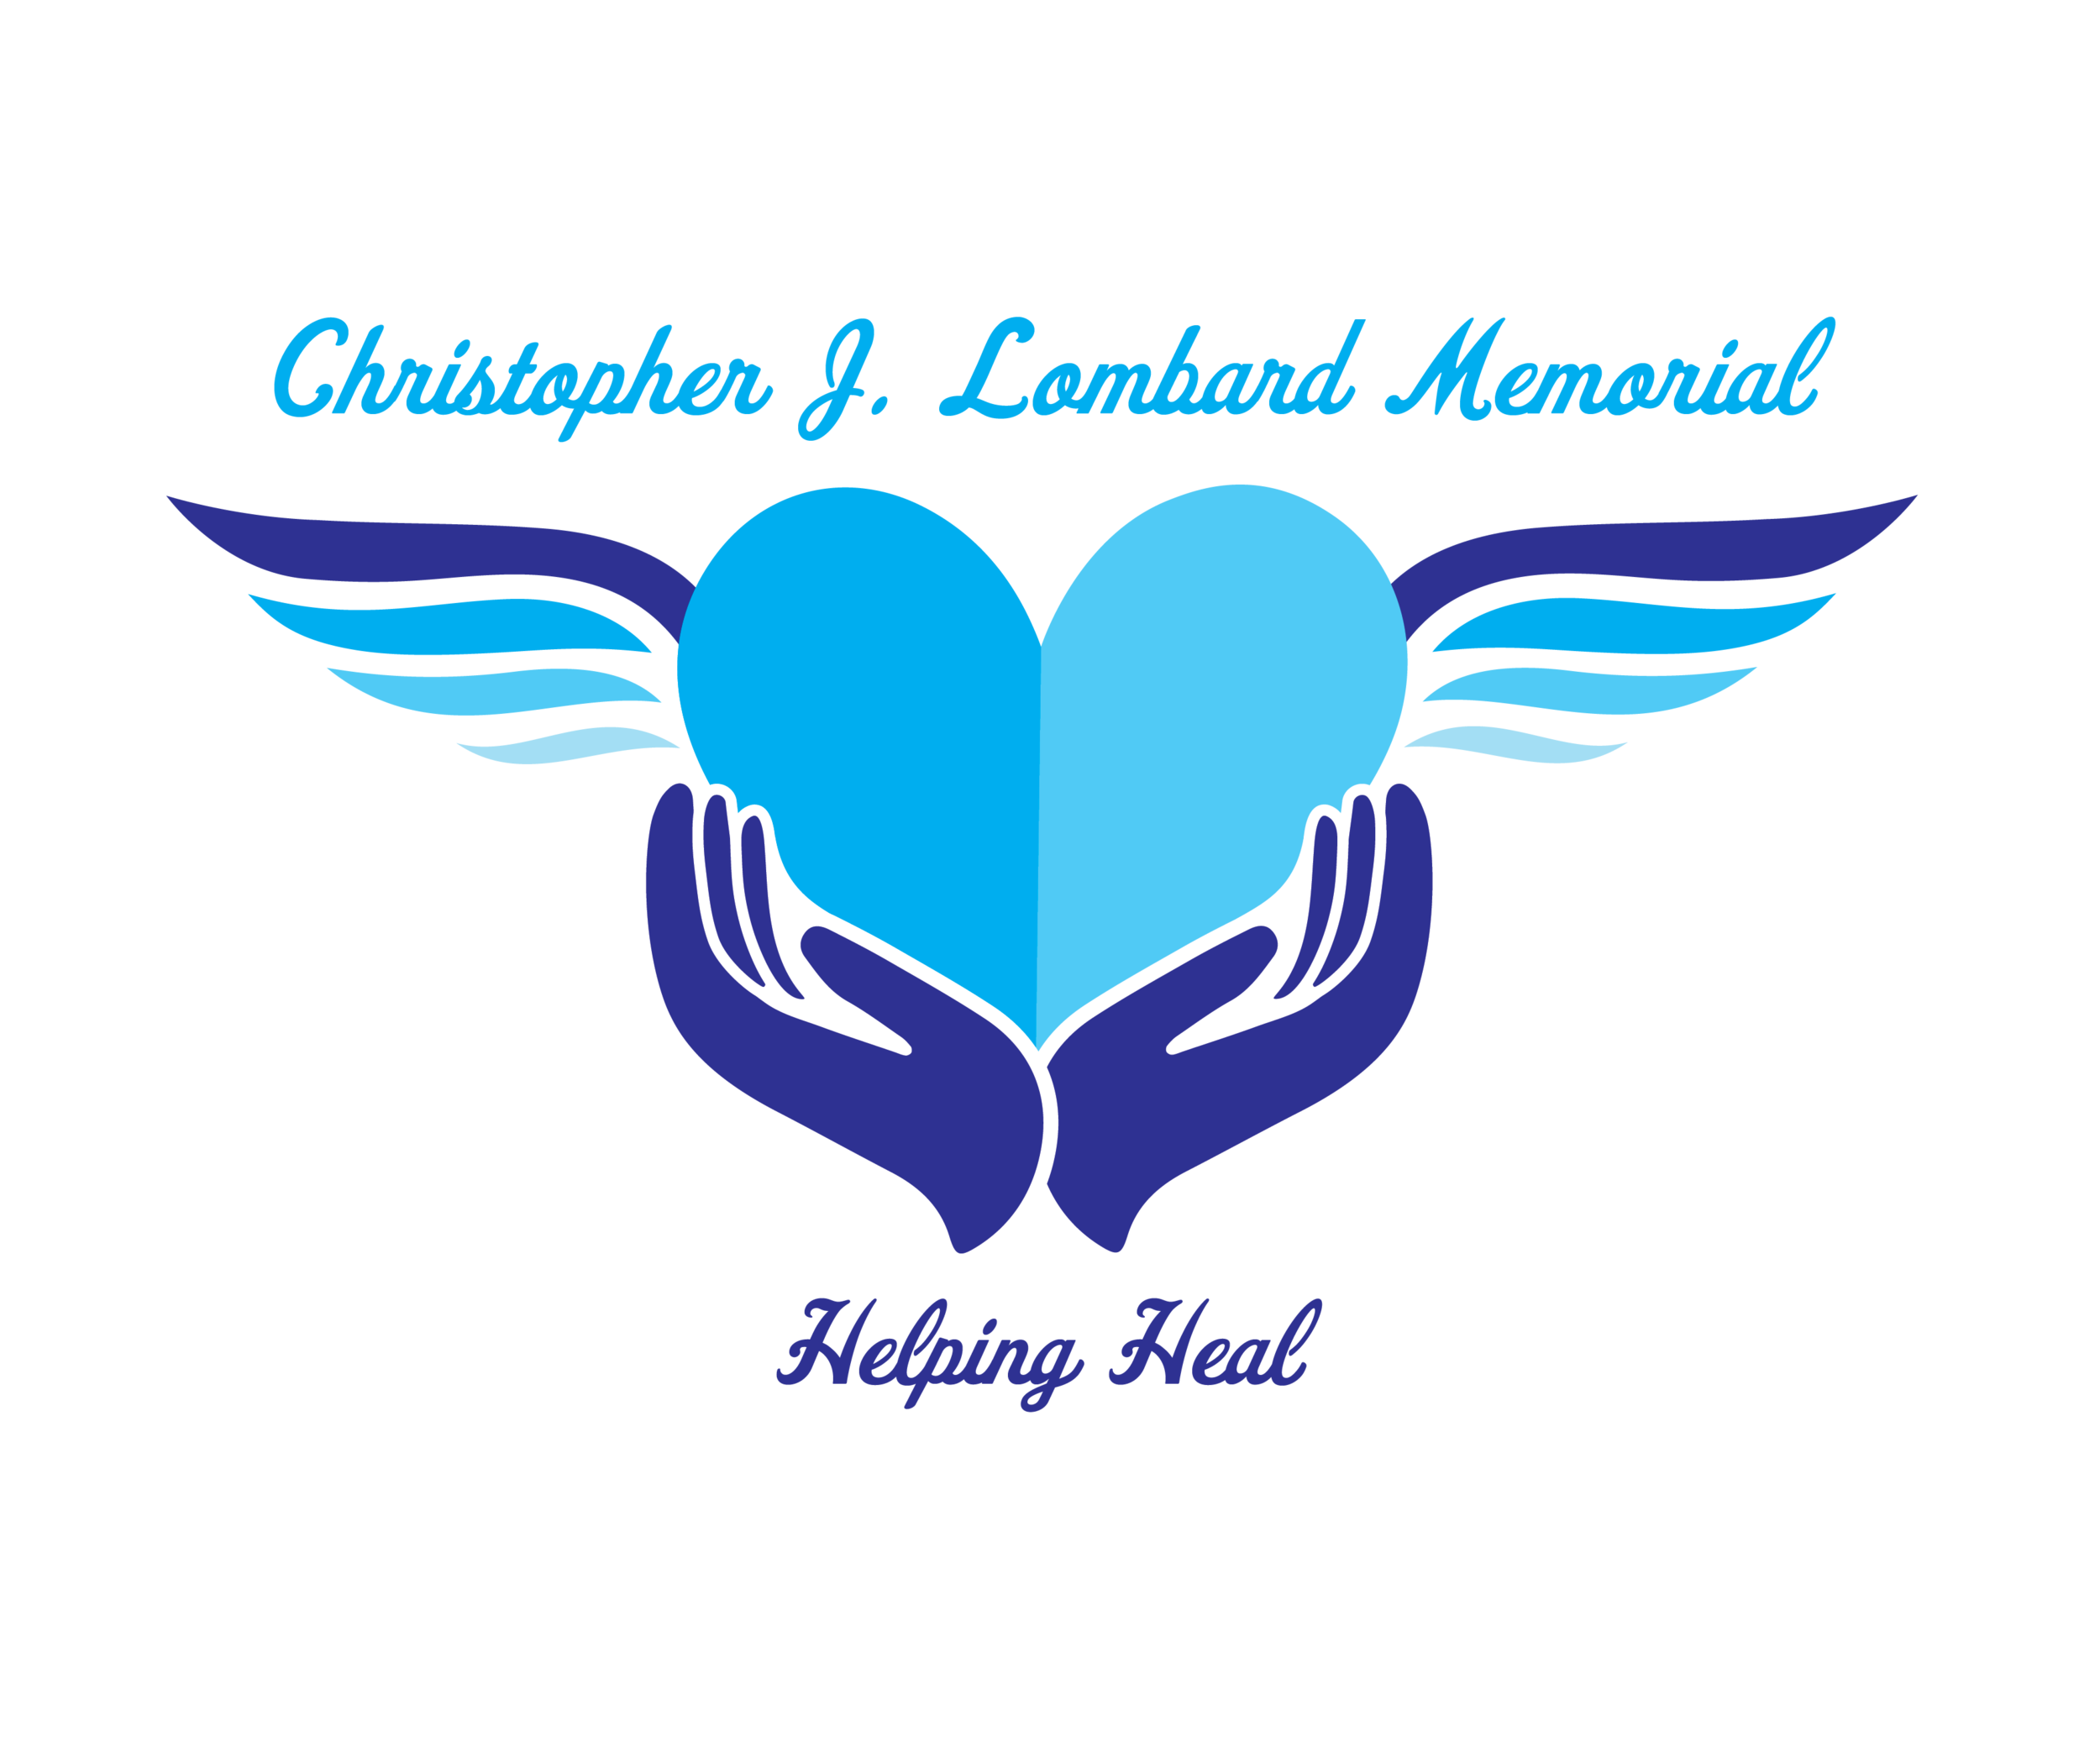 Memorial_Foundation_heart with text.png